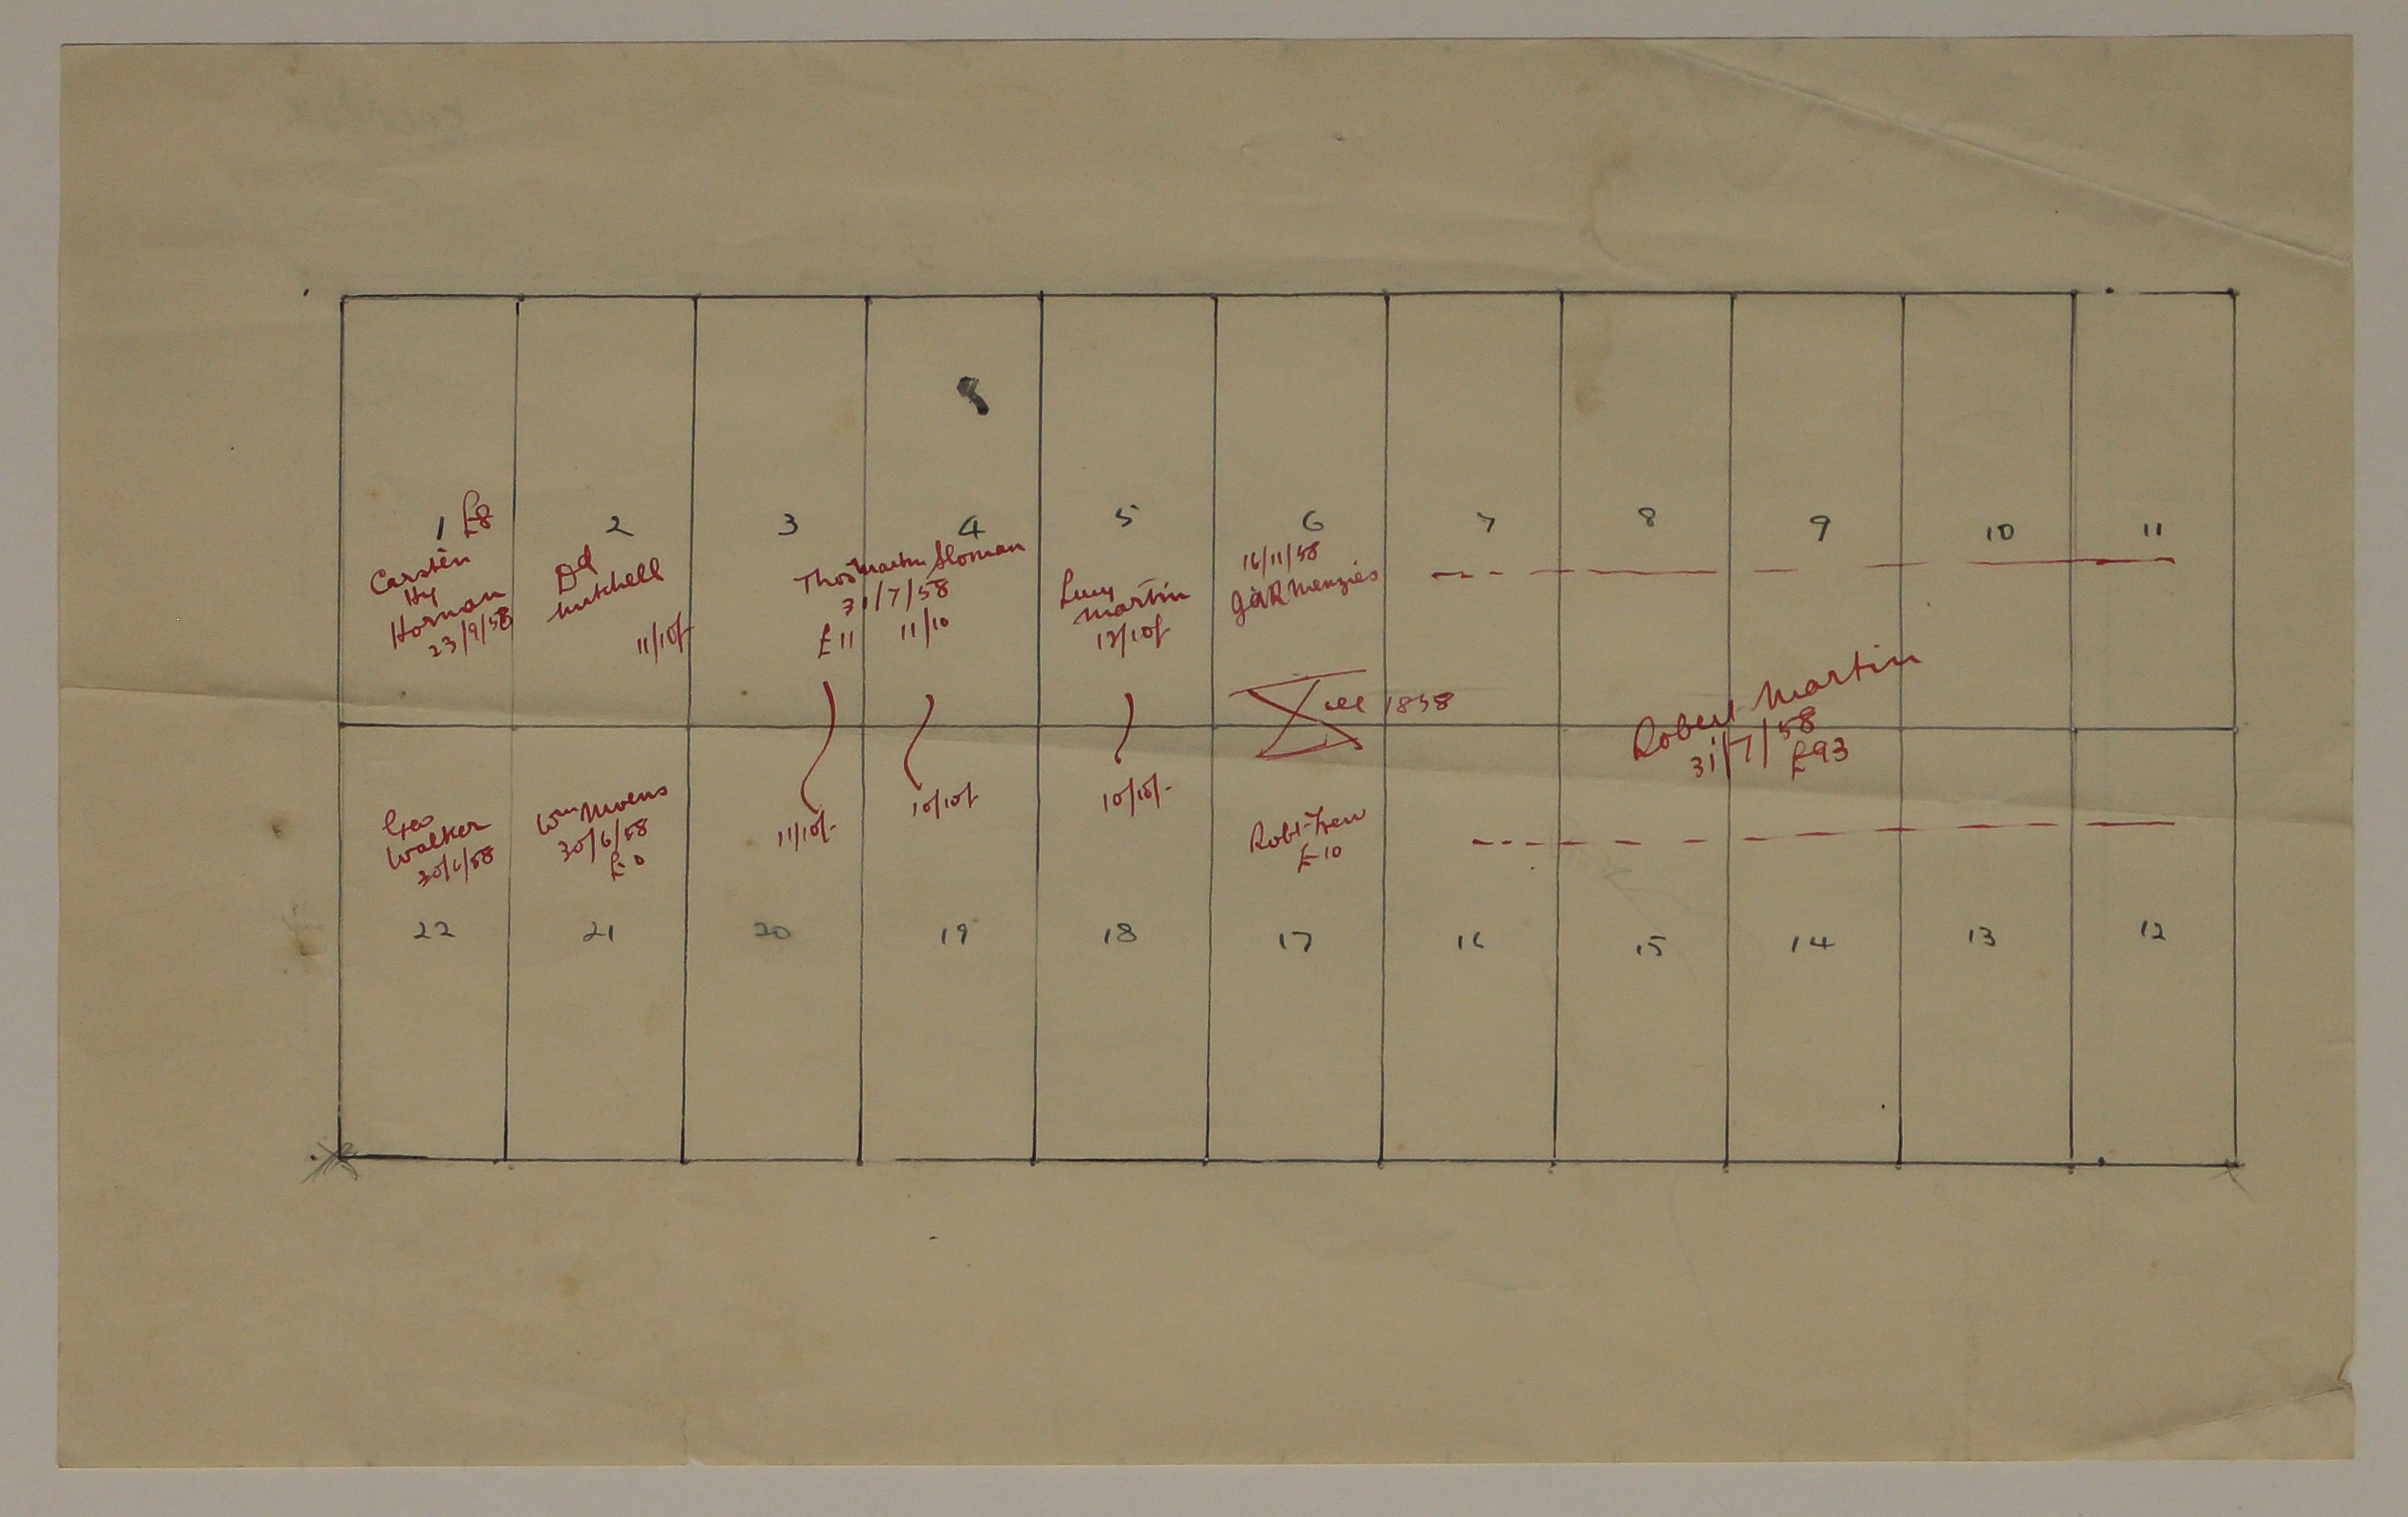 Allotments Invercargill Block X including sale dates and prices in 1858.